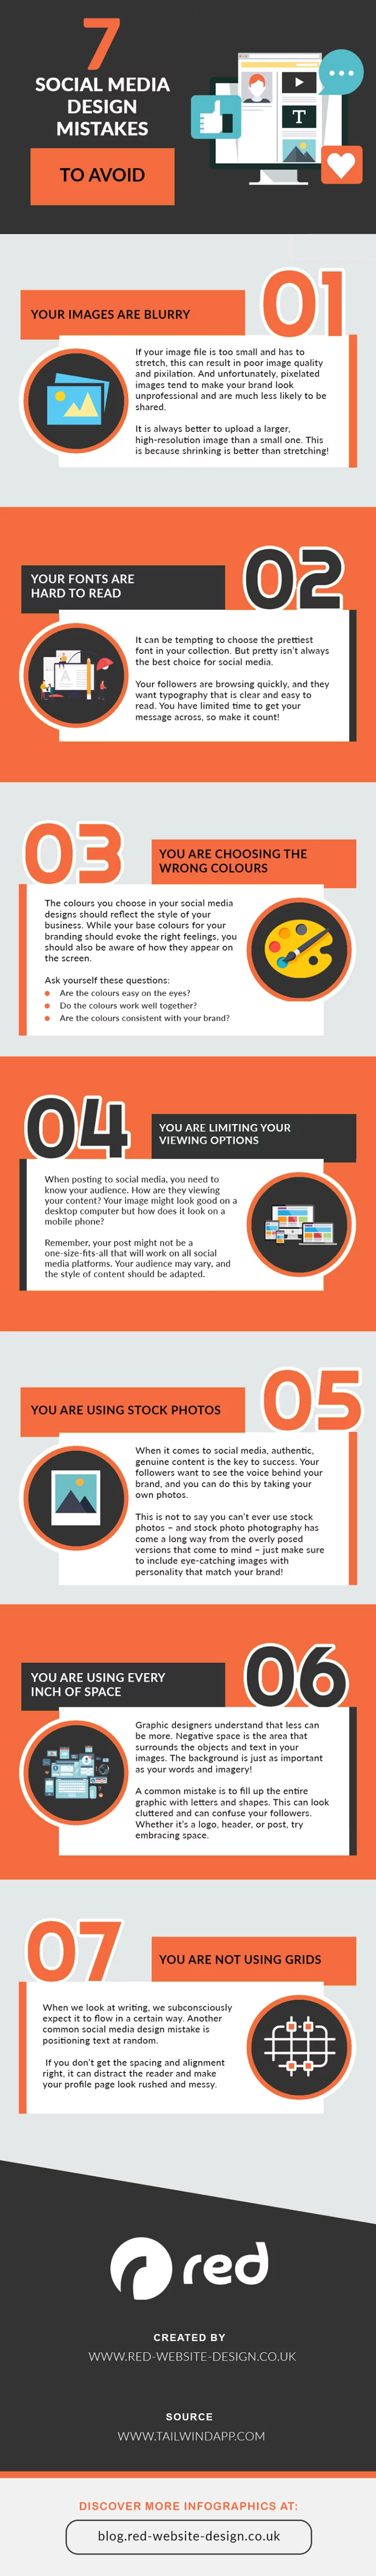 7 tips to improve your social media images